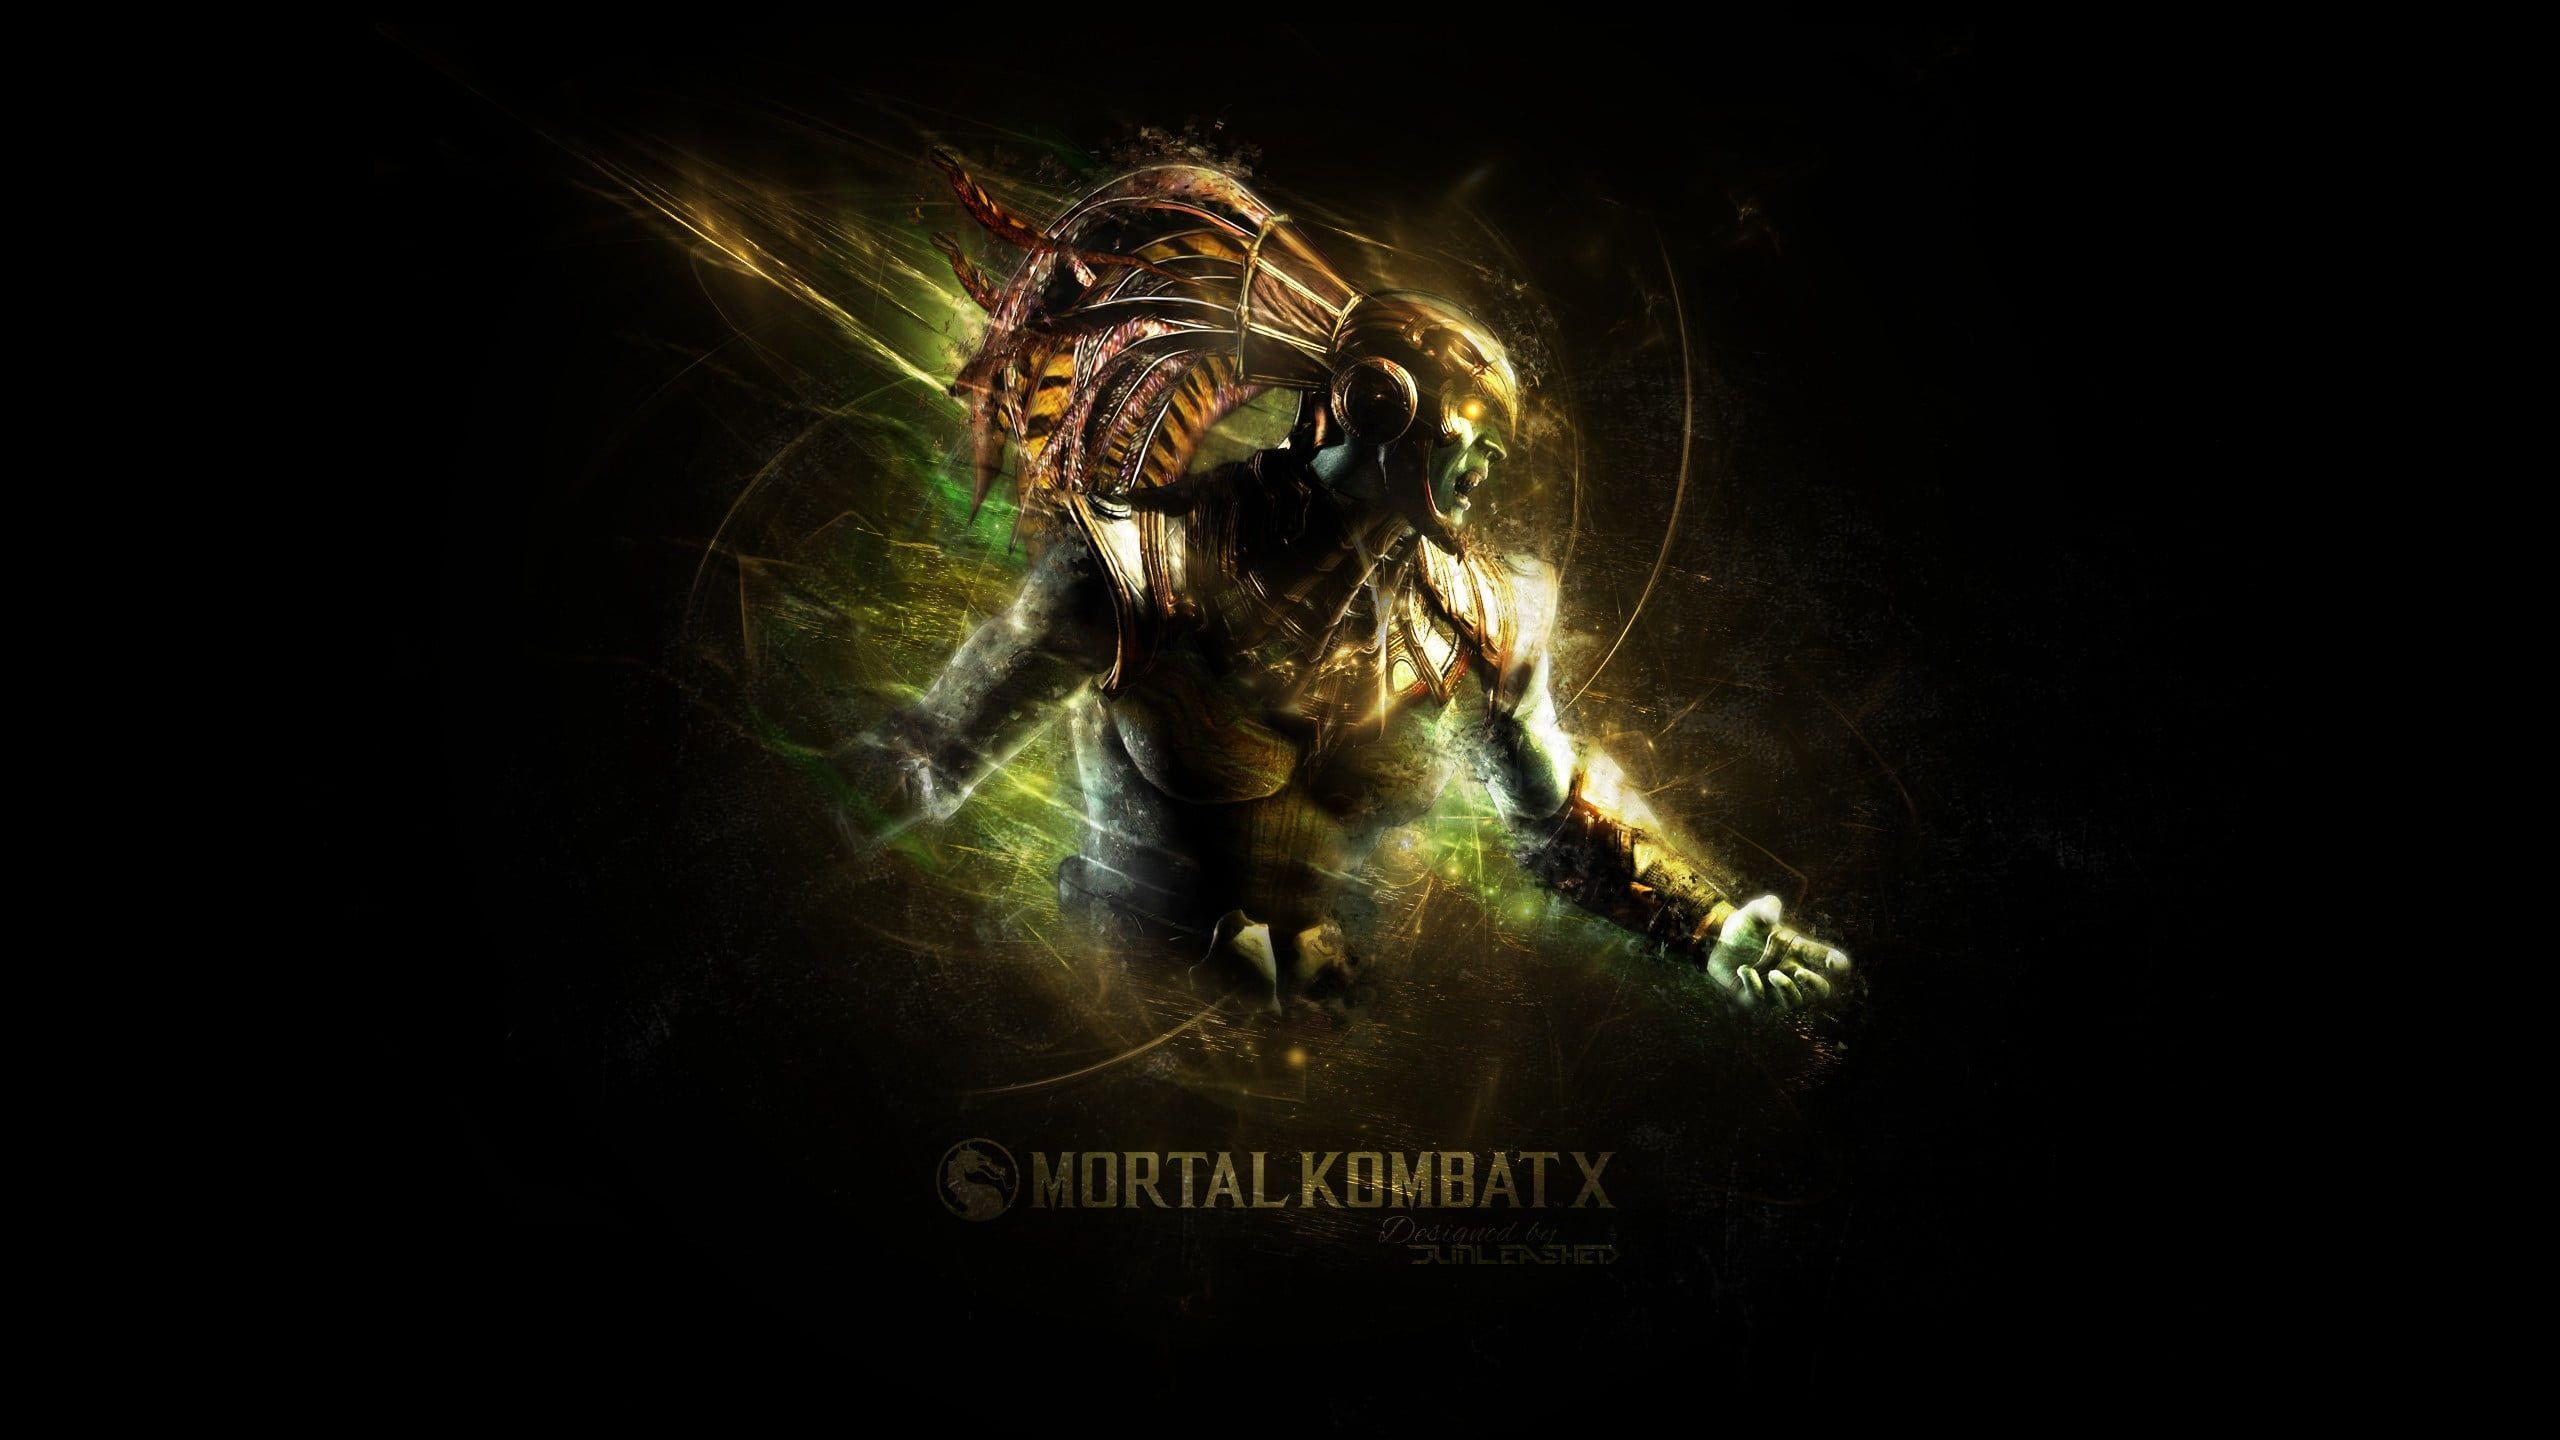 Mortal Kombat X Scorpion illustration, video games, Mortal Kombat X